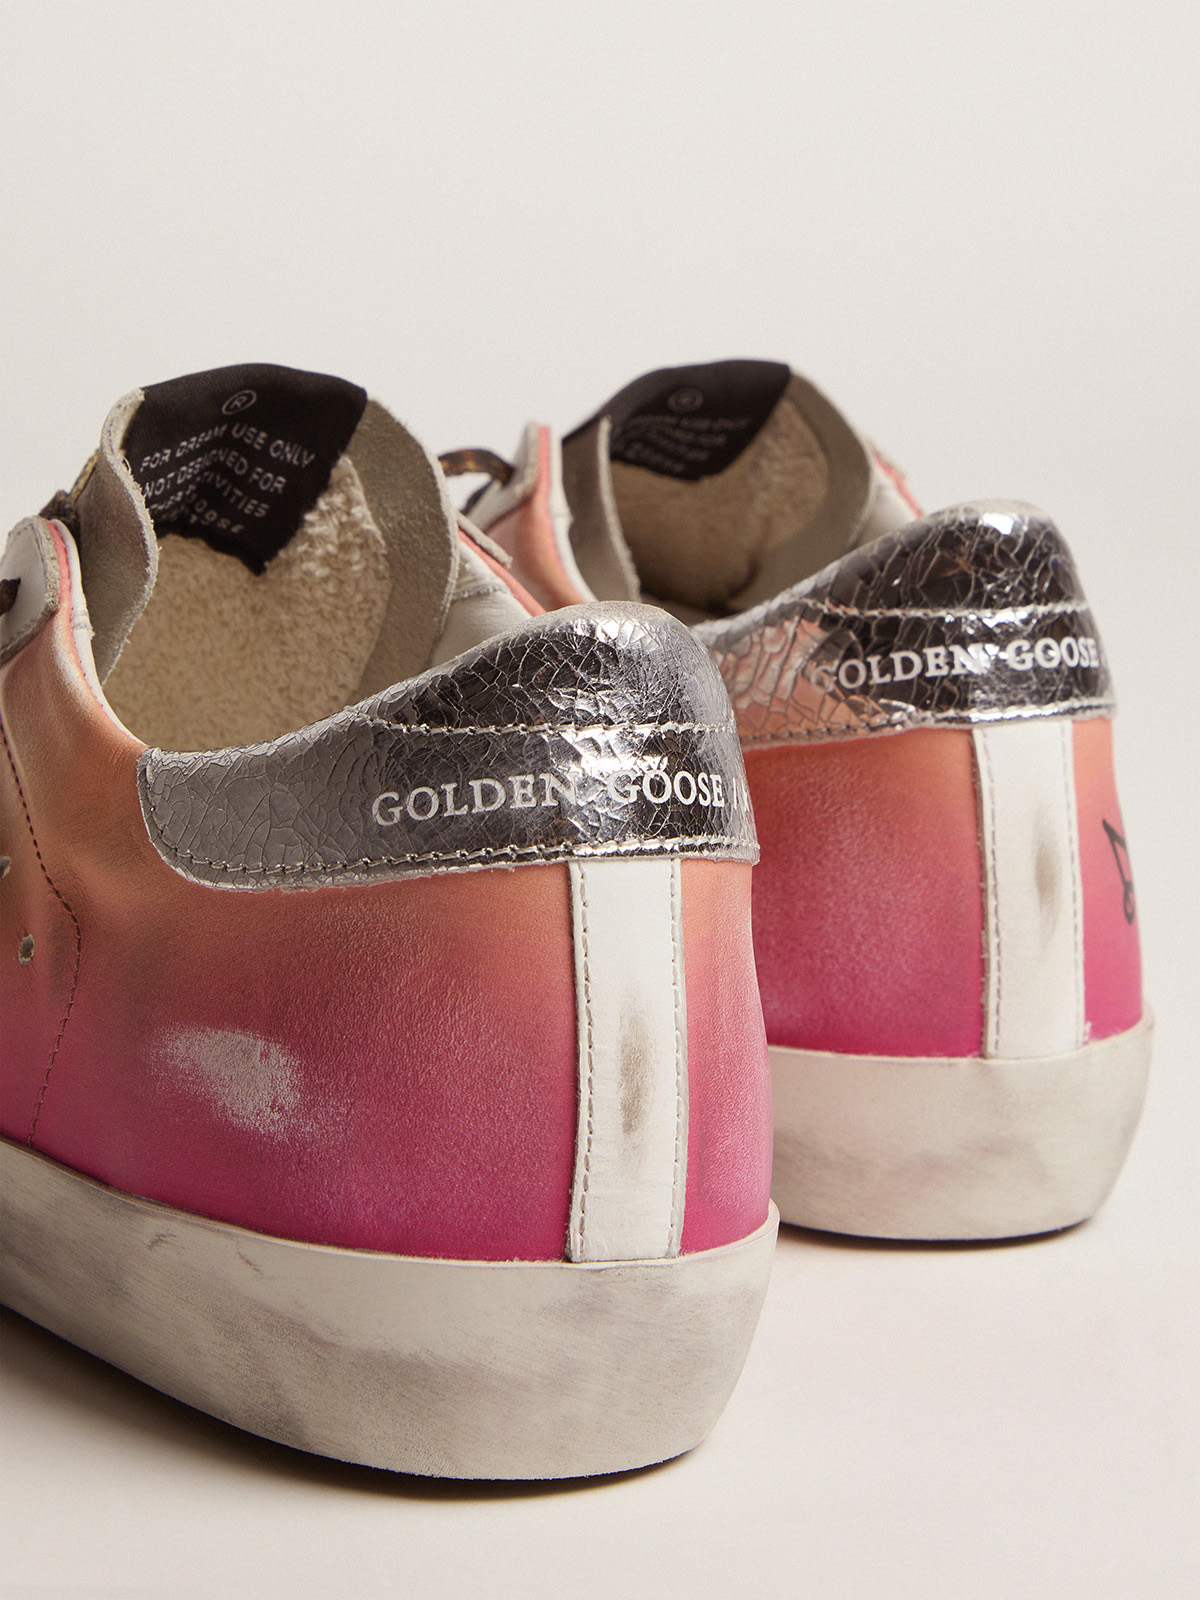 Golden Goose - Shaded pink Super-Star sneakers with metallic silver crackle leather heel tab in